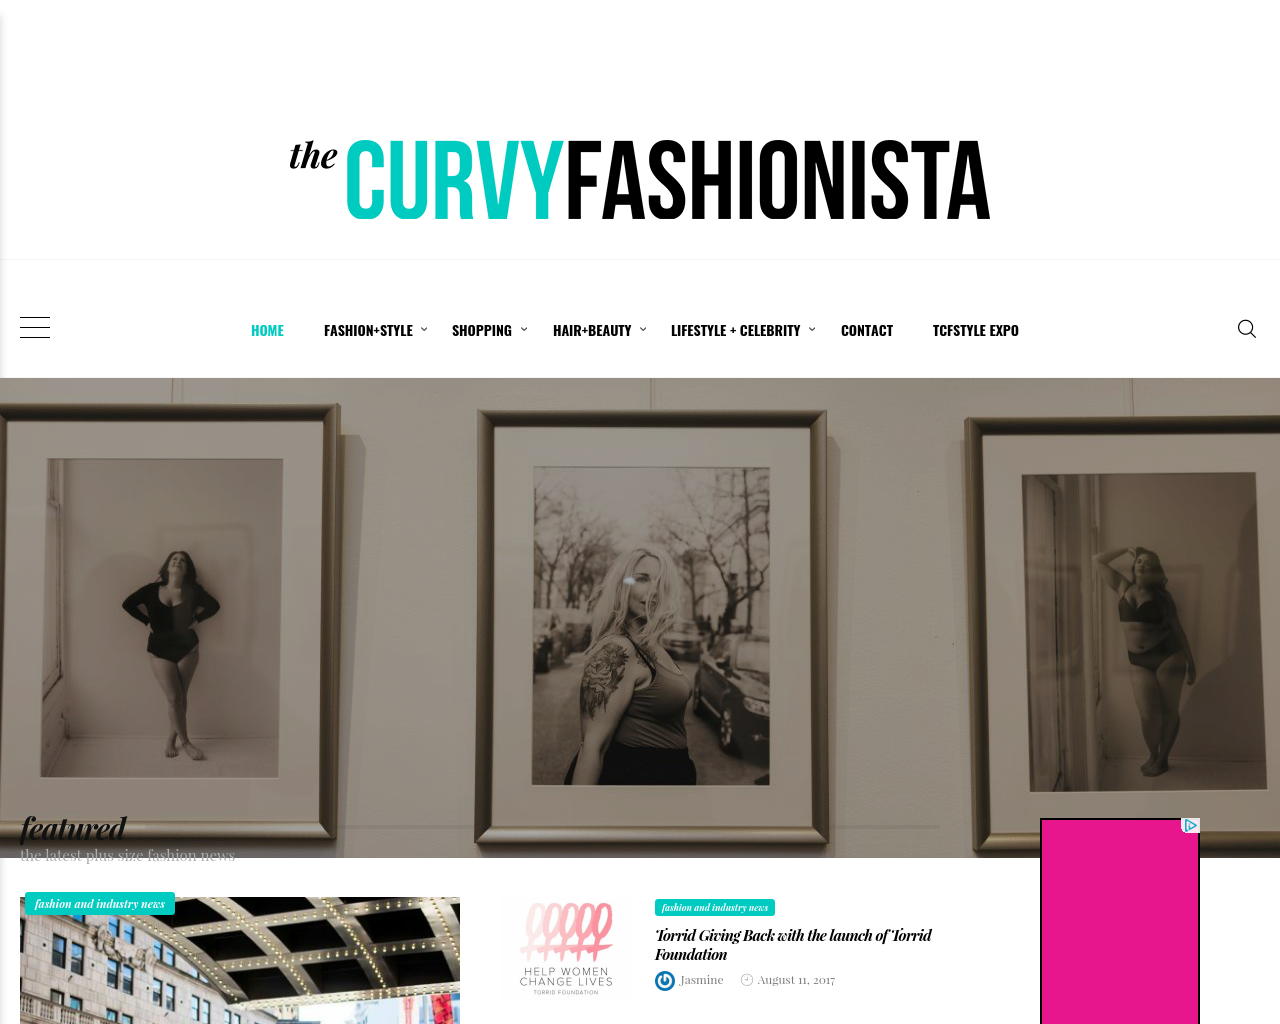 The-Curvy-Fashionista-Advertising-Reviews-Pricing